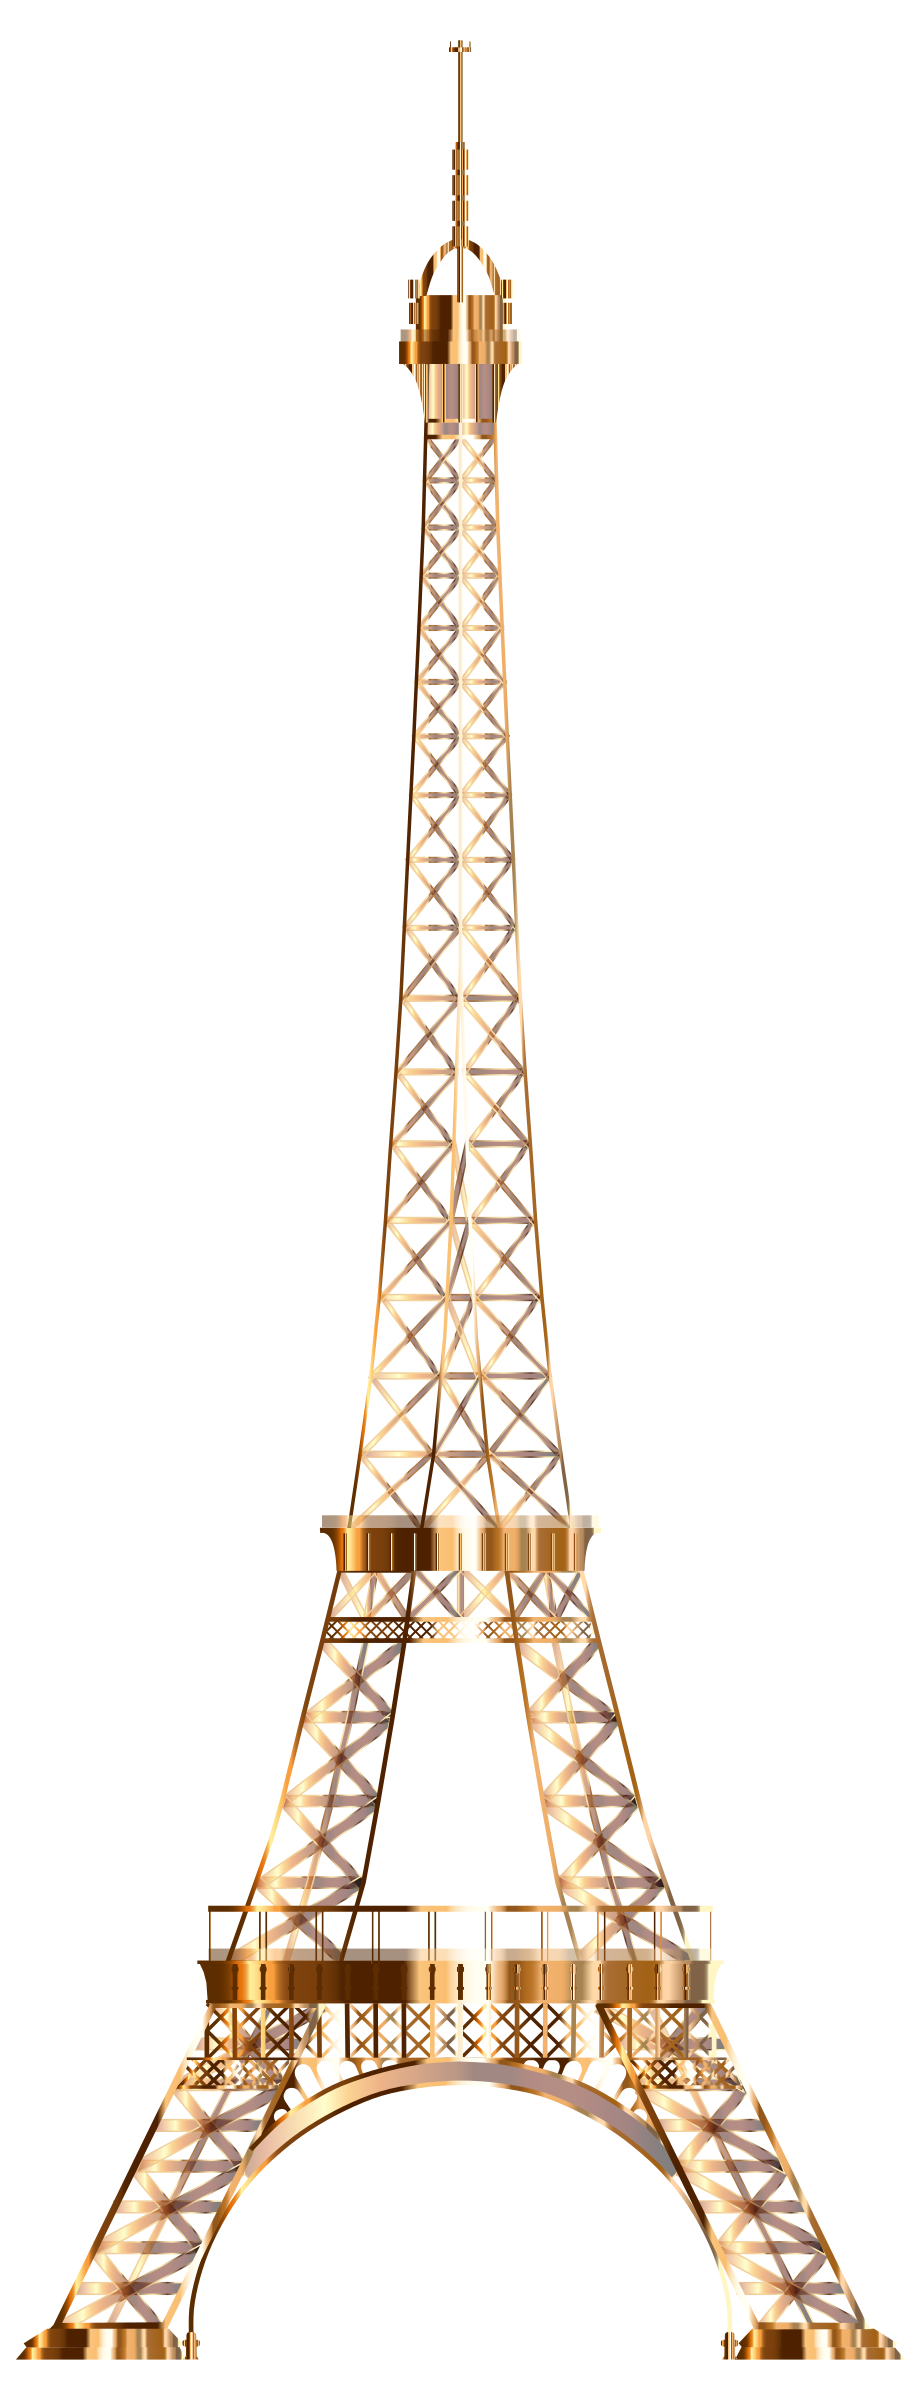 Eiffel Tower Shiny Copper No Background by GDJ